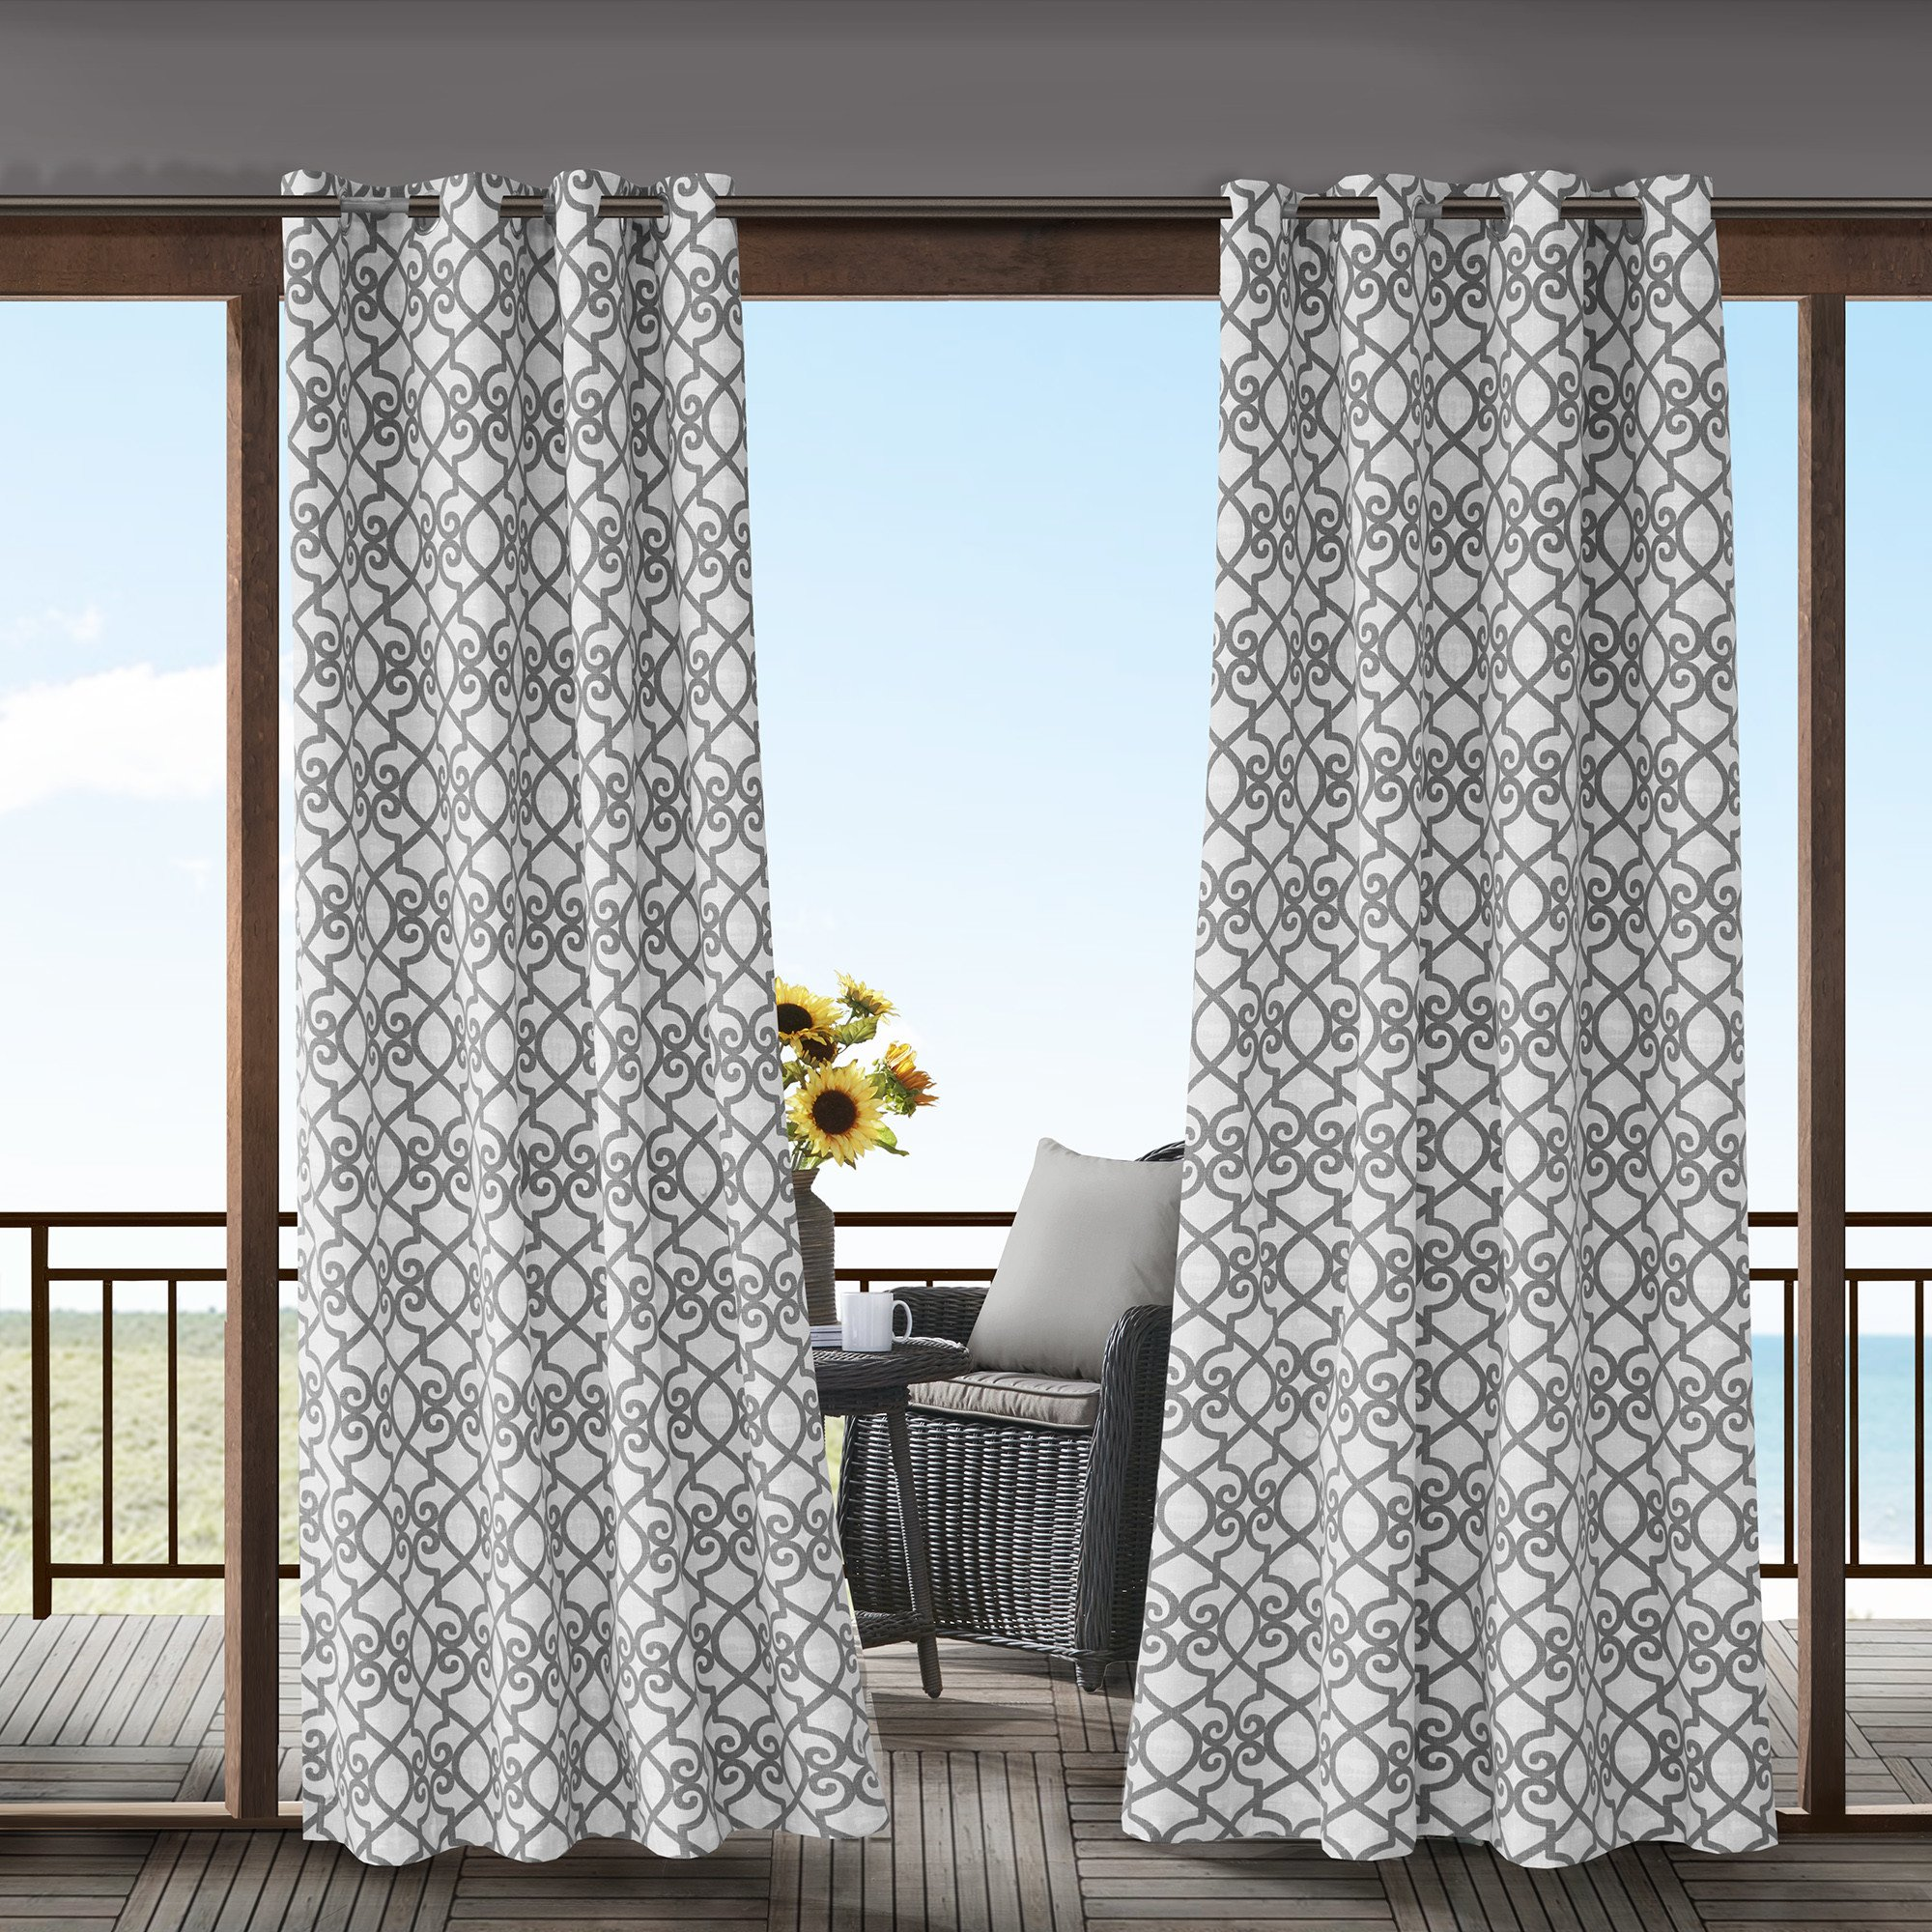 1 Piece Grey Fretwork Gazebo Curtain Panel 95 Inch, Gray Trellis Outdoor Curtain Light Filtering For Patio Porch, Water Resistant Indoor/outdoor Drapes For Sunroom Pergola Garden Grommet, Polyester